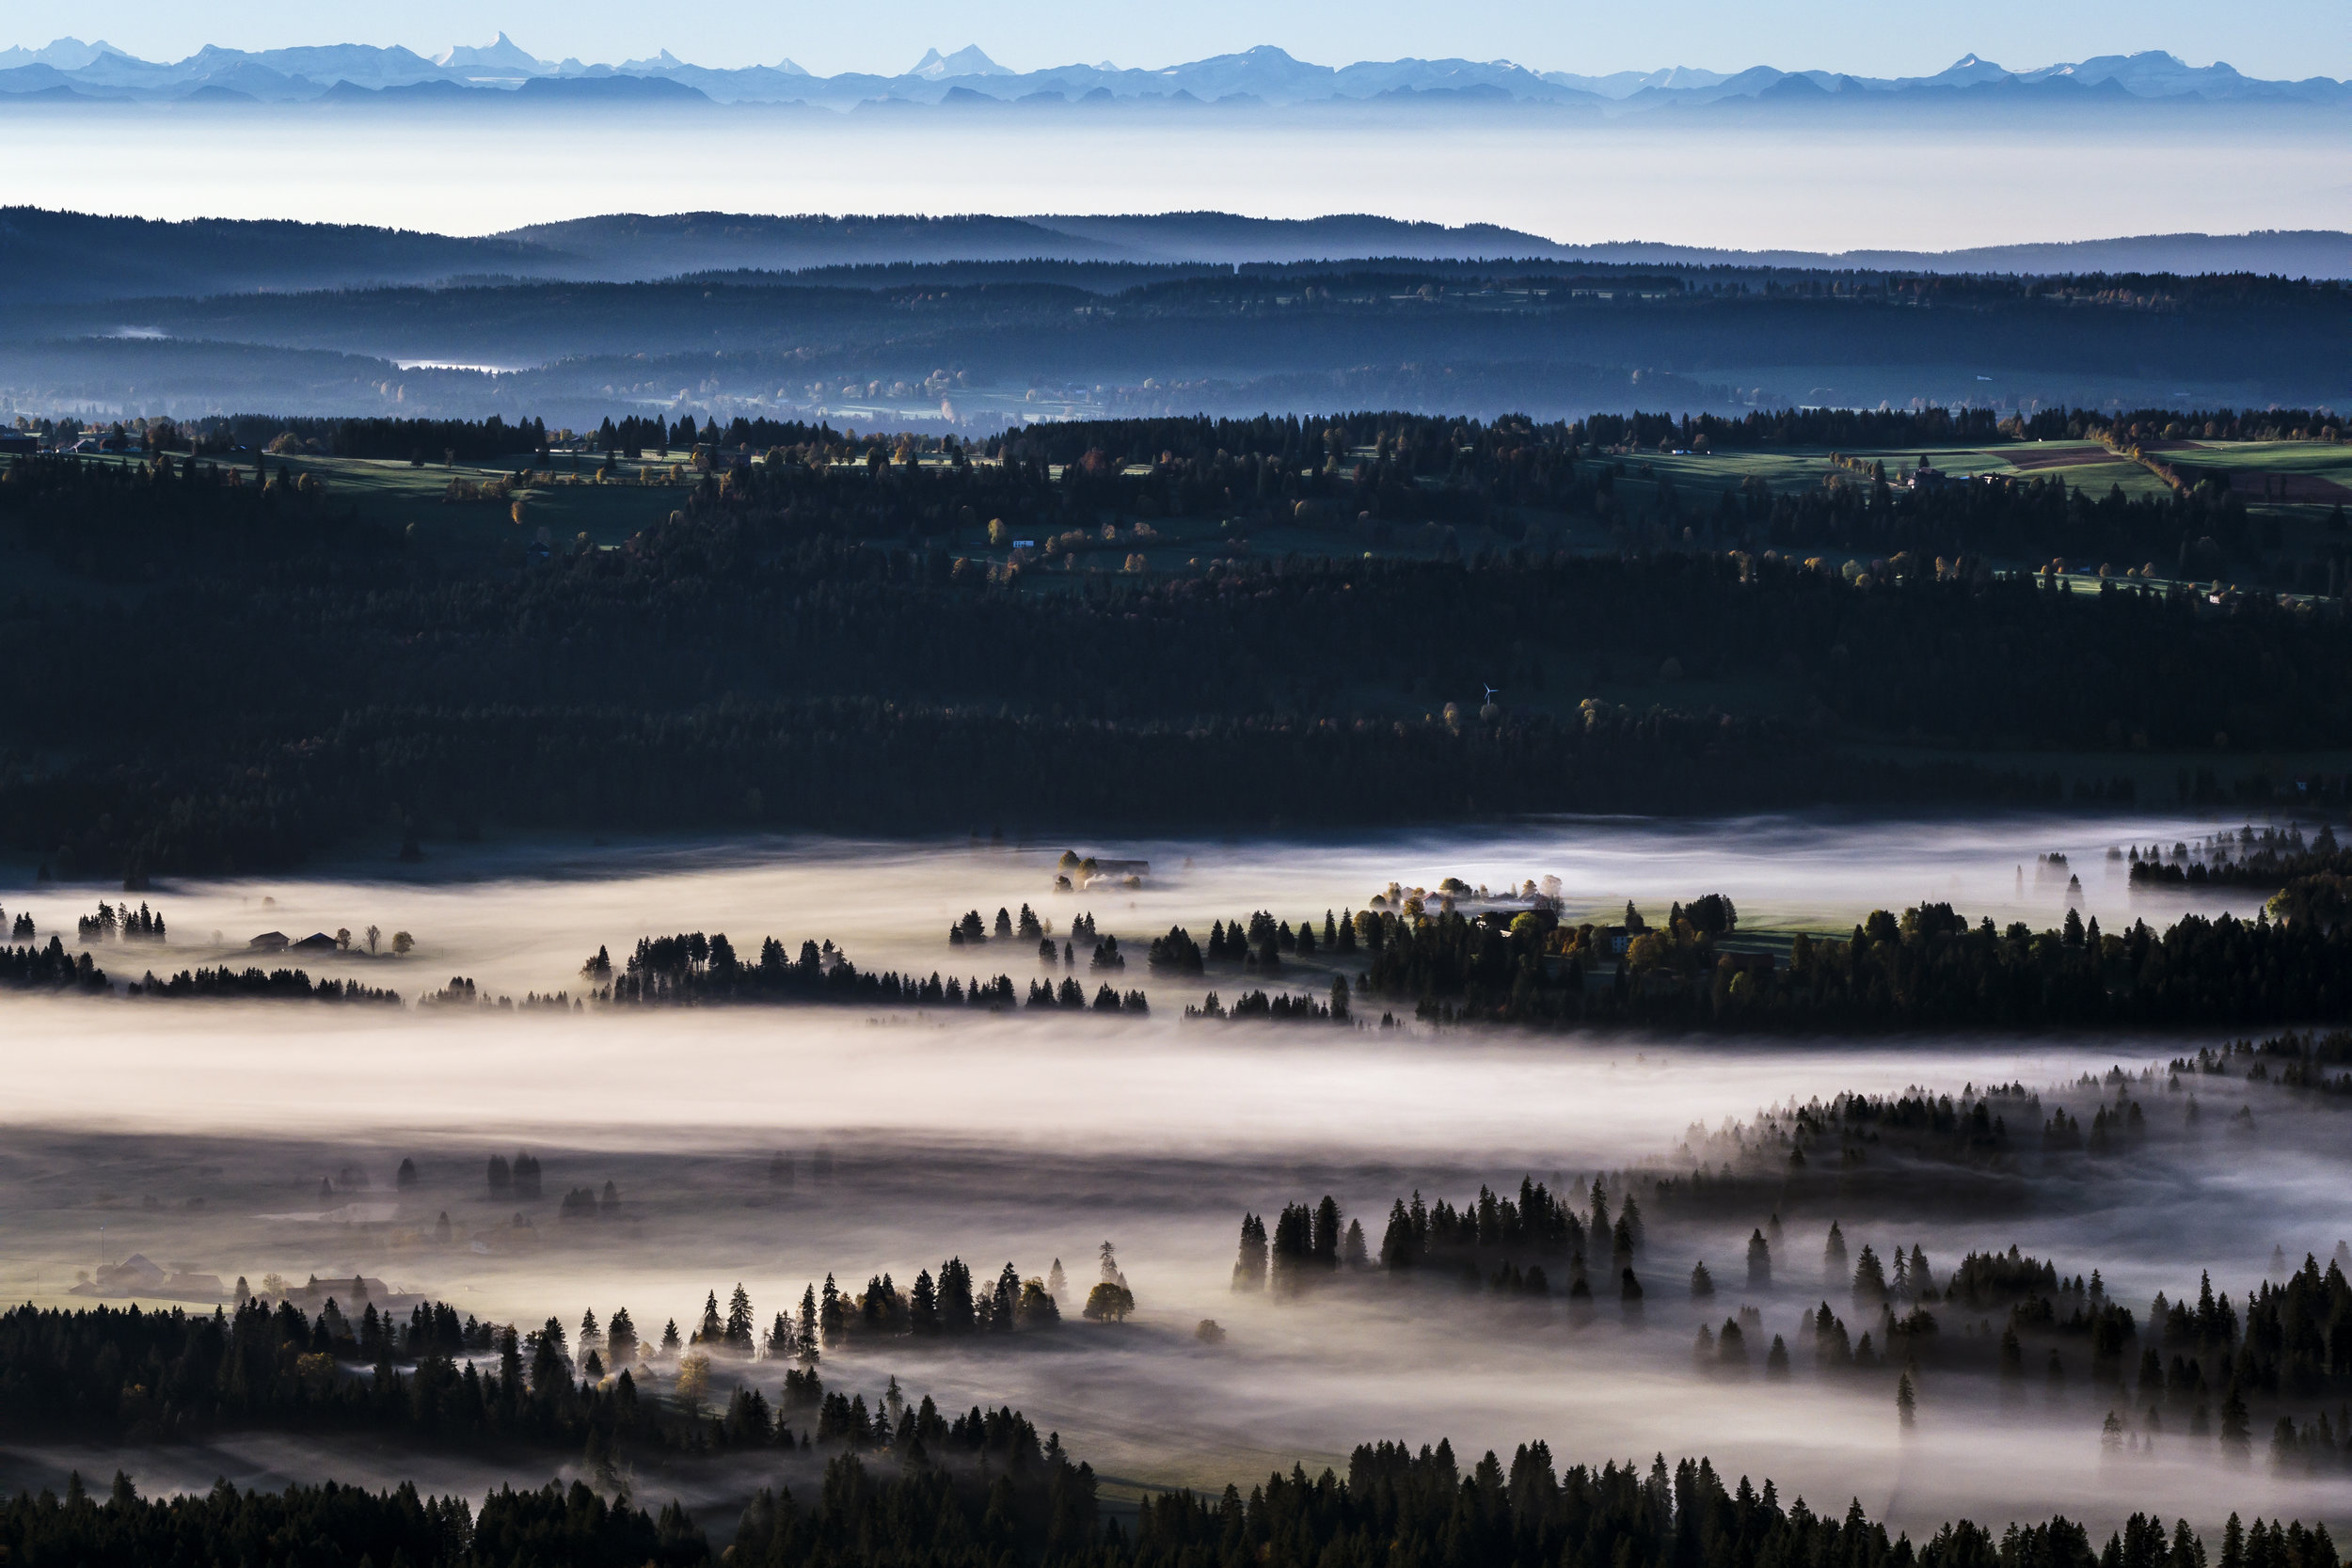 The sun shines through the morning mist in the countryside of the canton of Jura in Les Bois, Switzerland, Friday, October 13, 2017. (KEYSTONE/Valentin Flauraud)